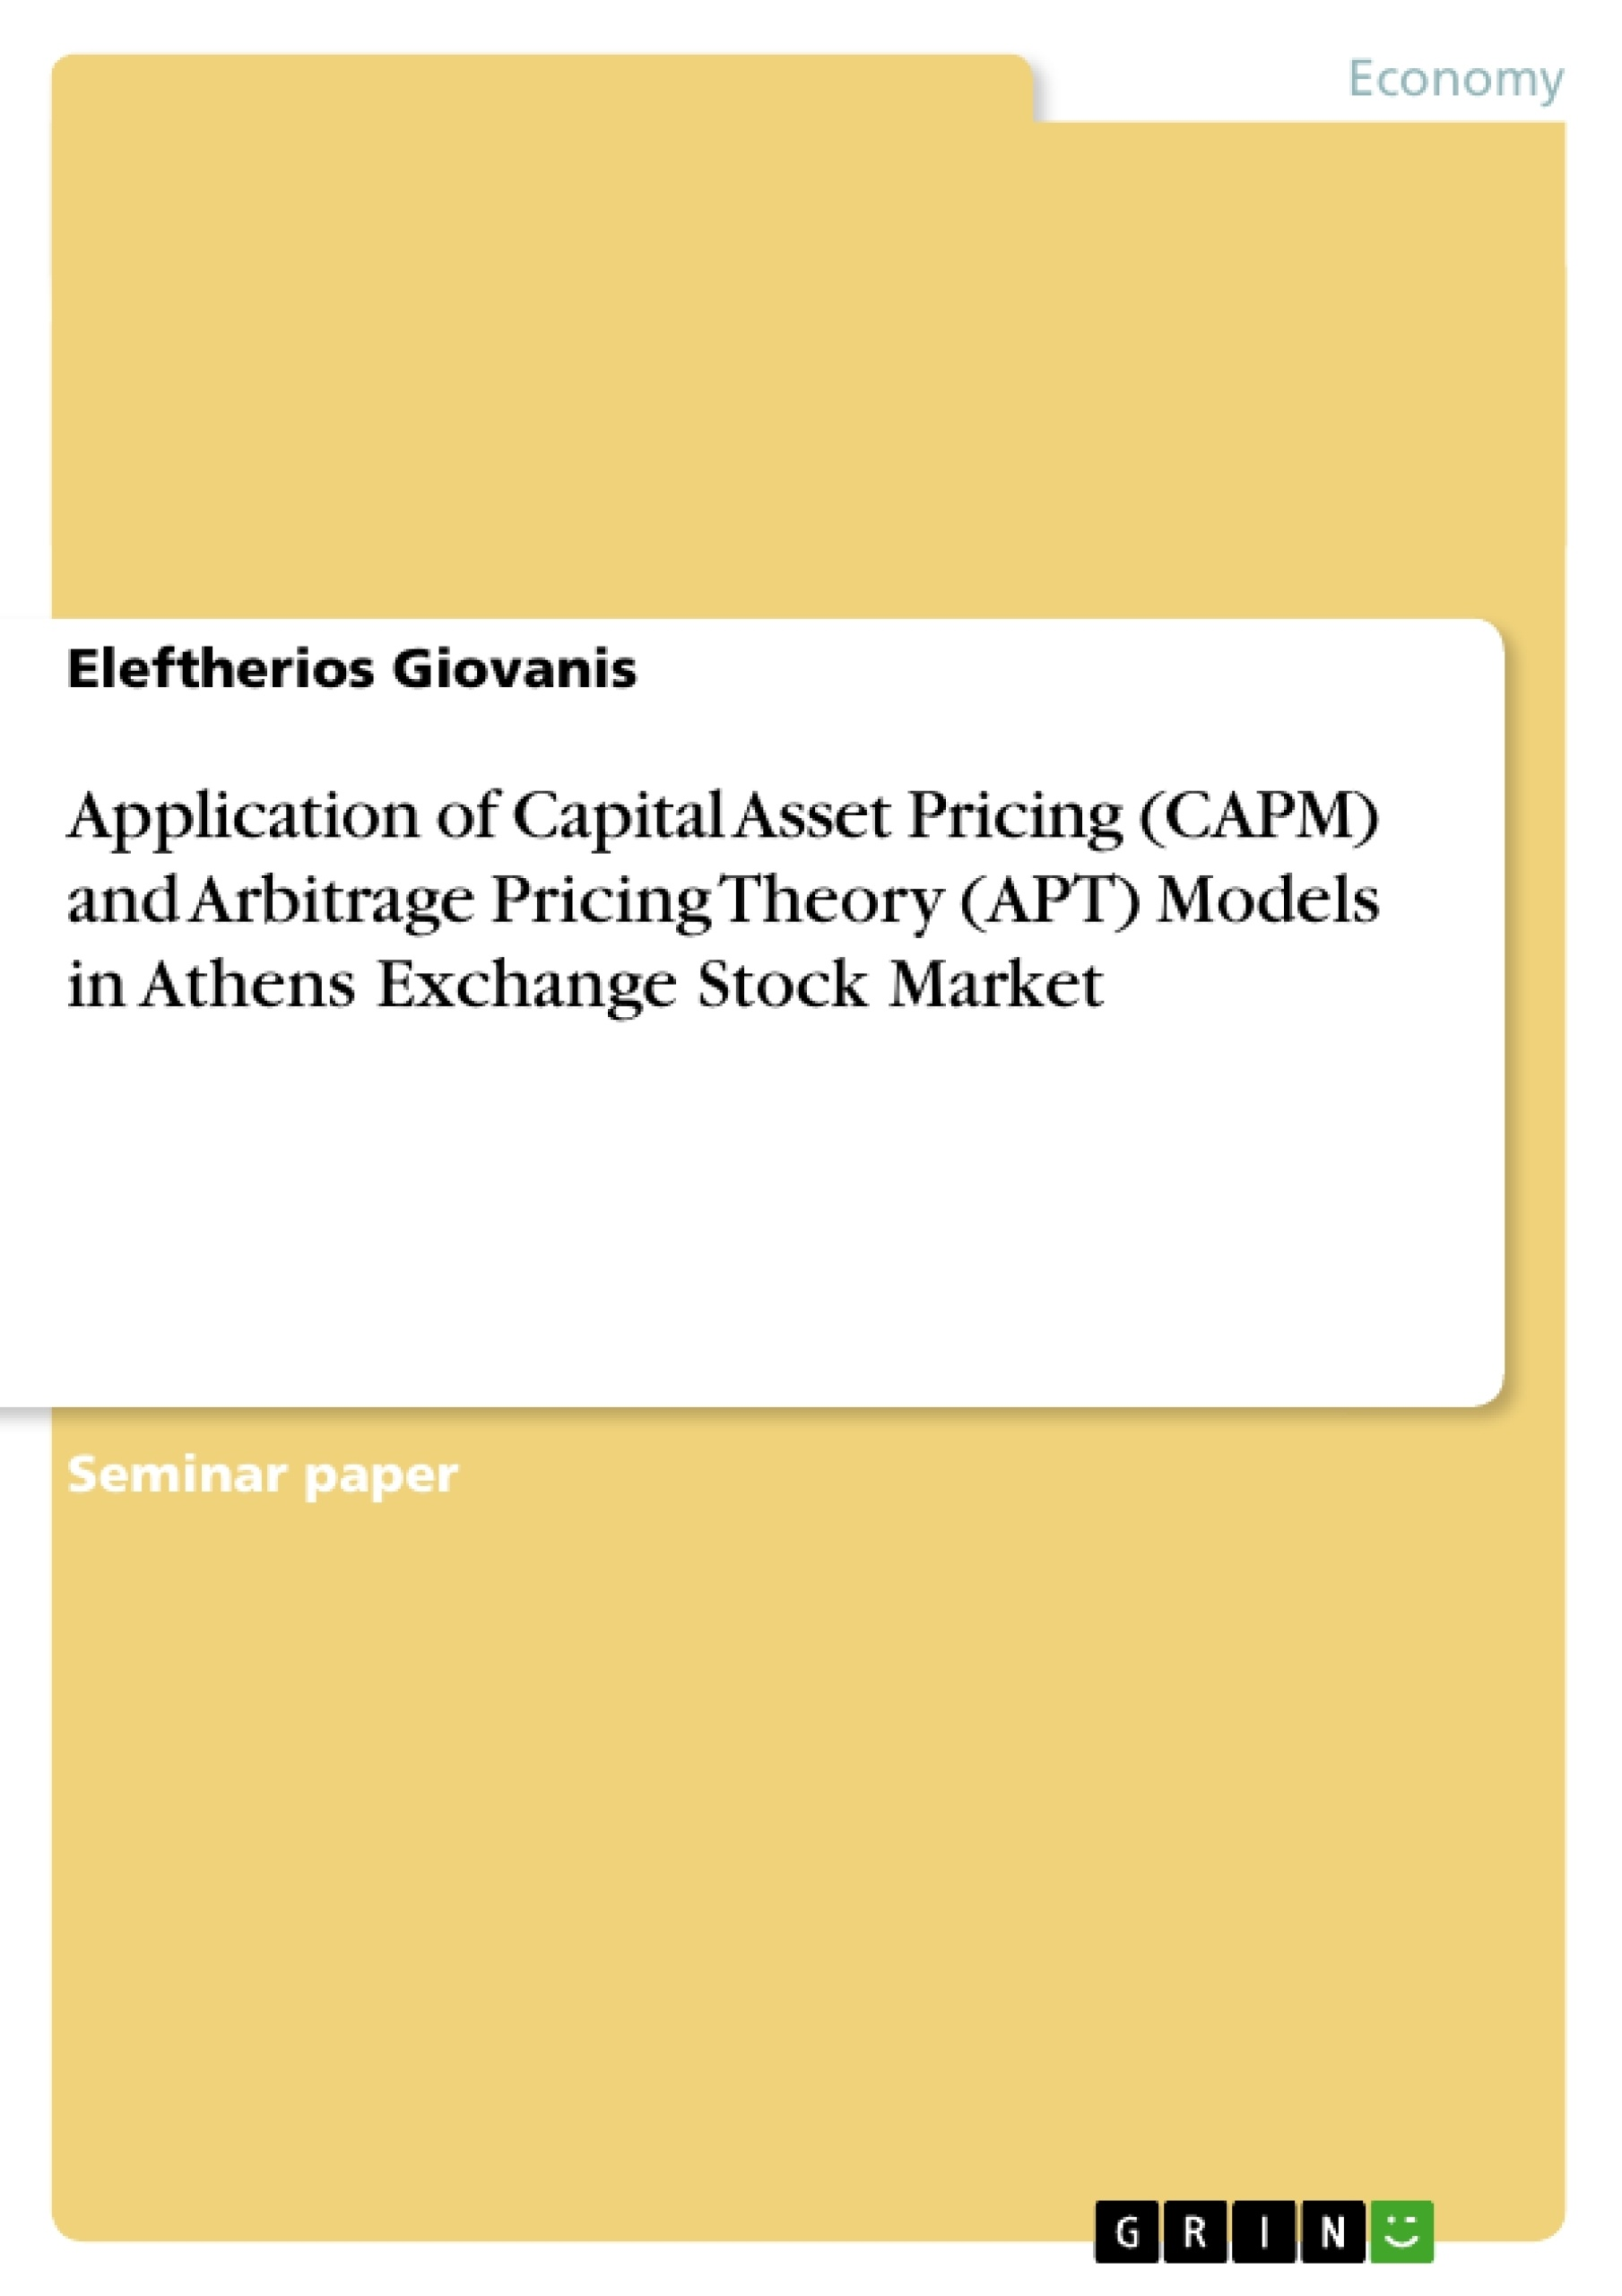 Title: Application of Capital Asset Pricing  (CAPM) and Arbitrage Pricing Theory (APT)  Models in Athens Exchange Stock Market